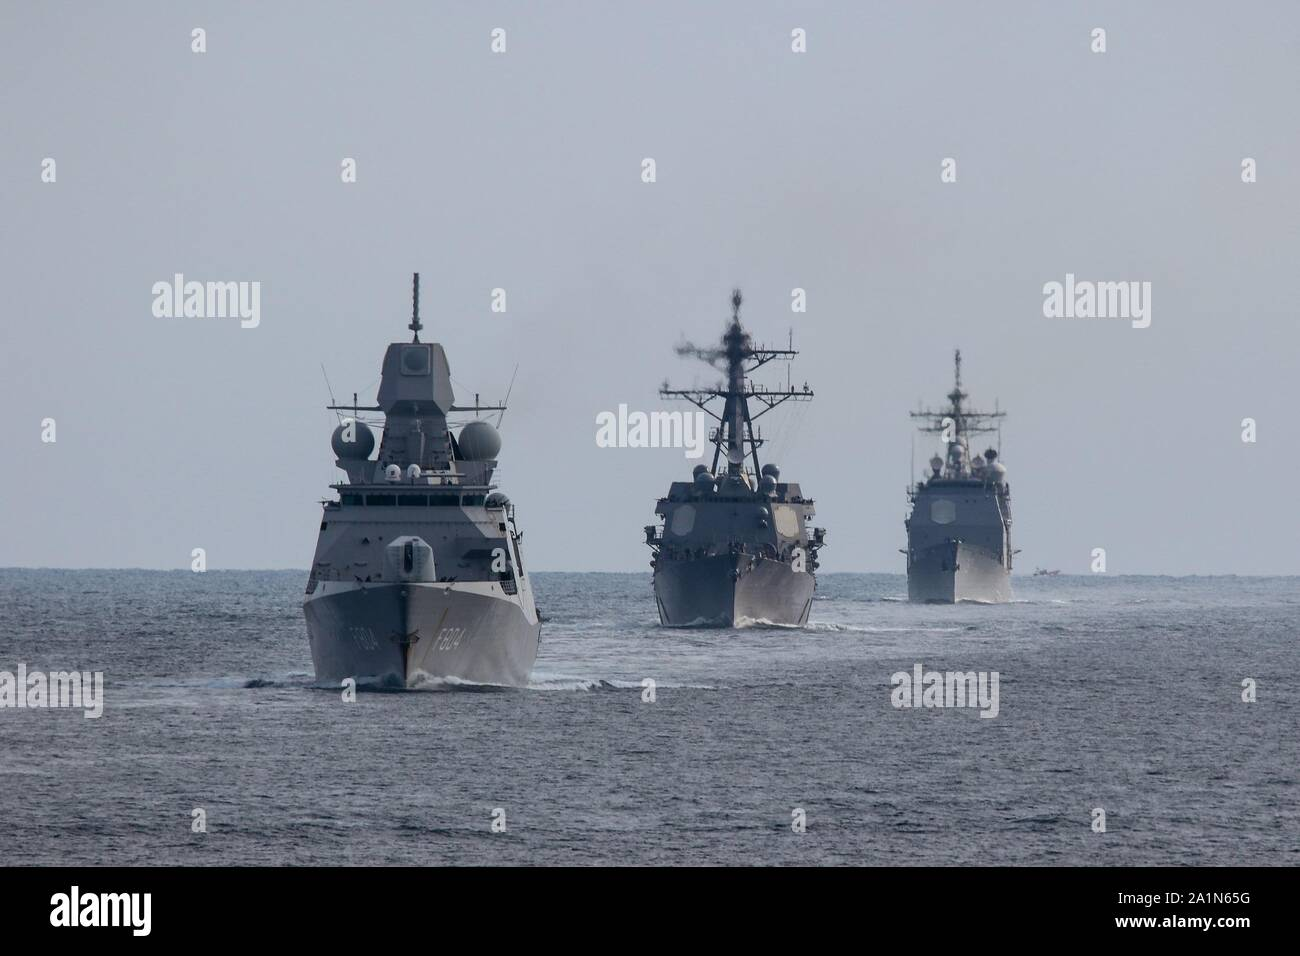 ATLANTIC OCEAN (Sept. 26, 2019) The Dutch navy frigate HNLMS De Ruyter (F804), left, Arleigh Burke-class guided missile destroyer USS Truxtun (DDG 103), center, and Ticonderoga-class guided missile cruiser USS Vella Gulf (CG 72) participate in a Group Sail exercise as part of Carrier Strike Group 10. CSG-10, also known as the Eisenhower CSG, is employed in a variety of roles, all of which involve gaining and maintaining sea control in an era of Great Power Competition. (U.S. Navy photo by LT Laura Radspinner/Released) Stock Photo